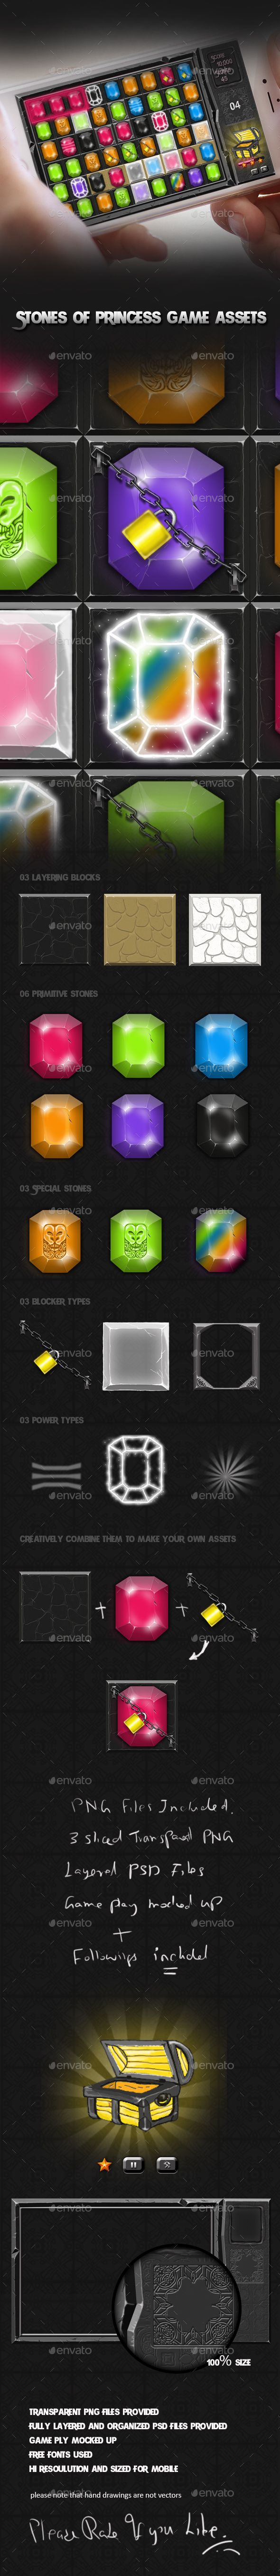 Match 3 Stones - Game Assets - Game Kits #Game Assets Download here: https://graphicriver.net/item/match-3-stones-game-assets/19762507?ref=alena994